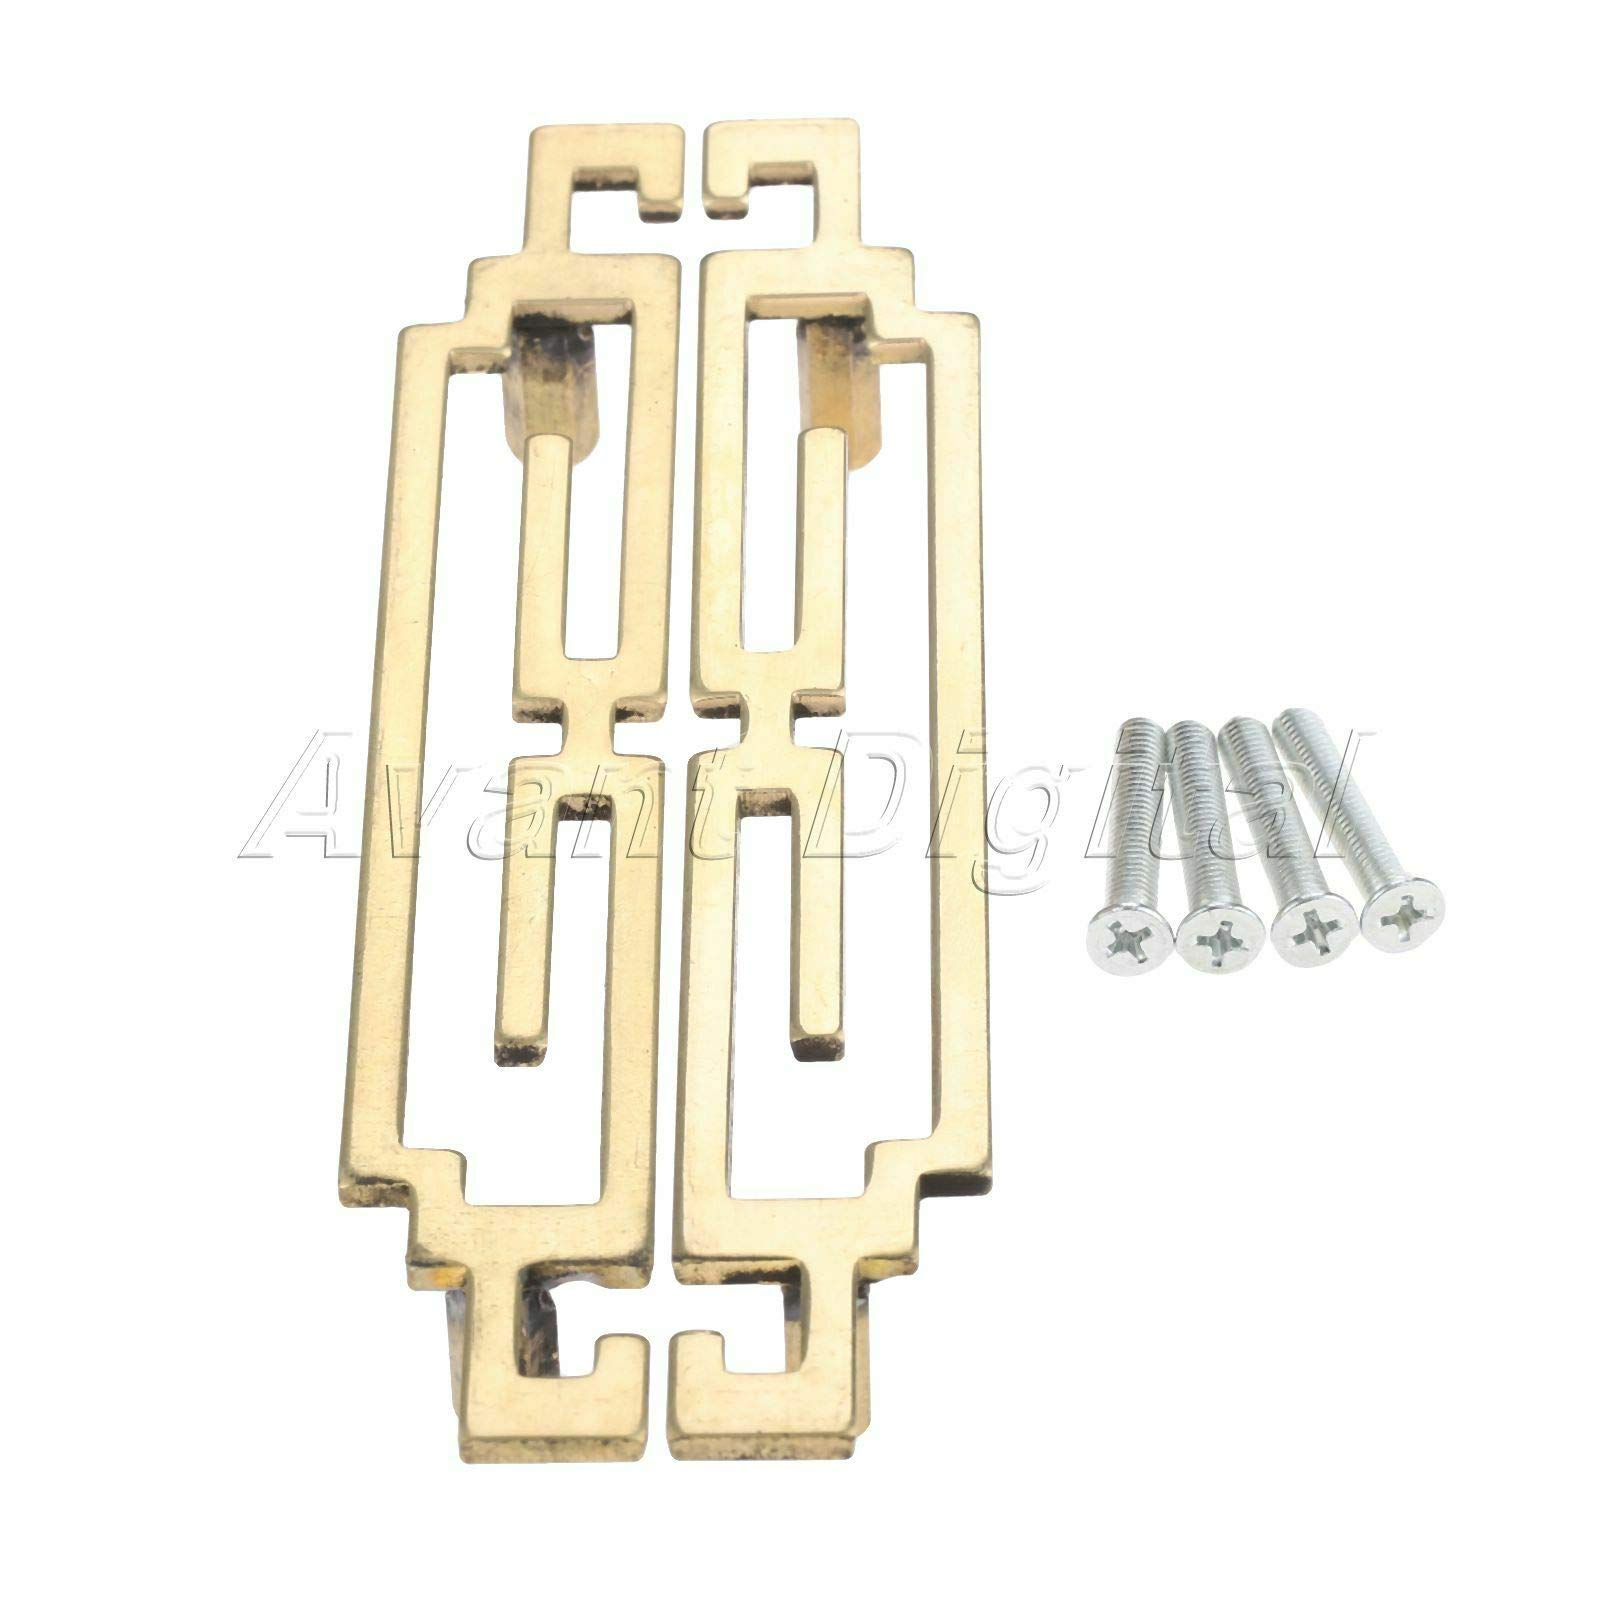 Mercury_Group, Antique Retro Vintage Pulls Knobs, Dynasty Style Door Cupboard Brass Handle Pulls Furniture Kitchen Cabinet Knobs - (Size: Length 175mmx2Pcs, Color: Brass)